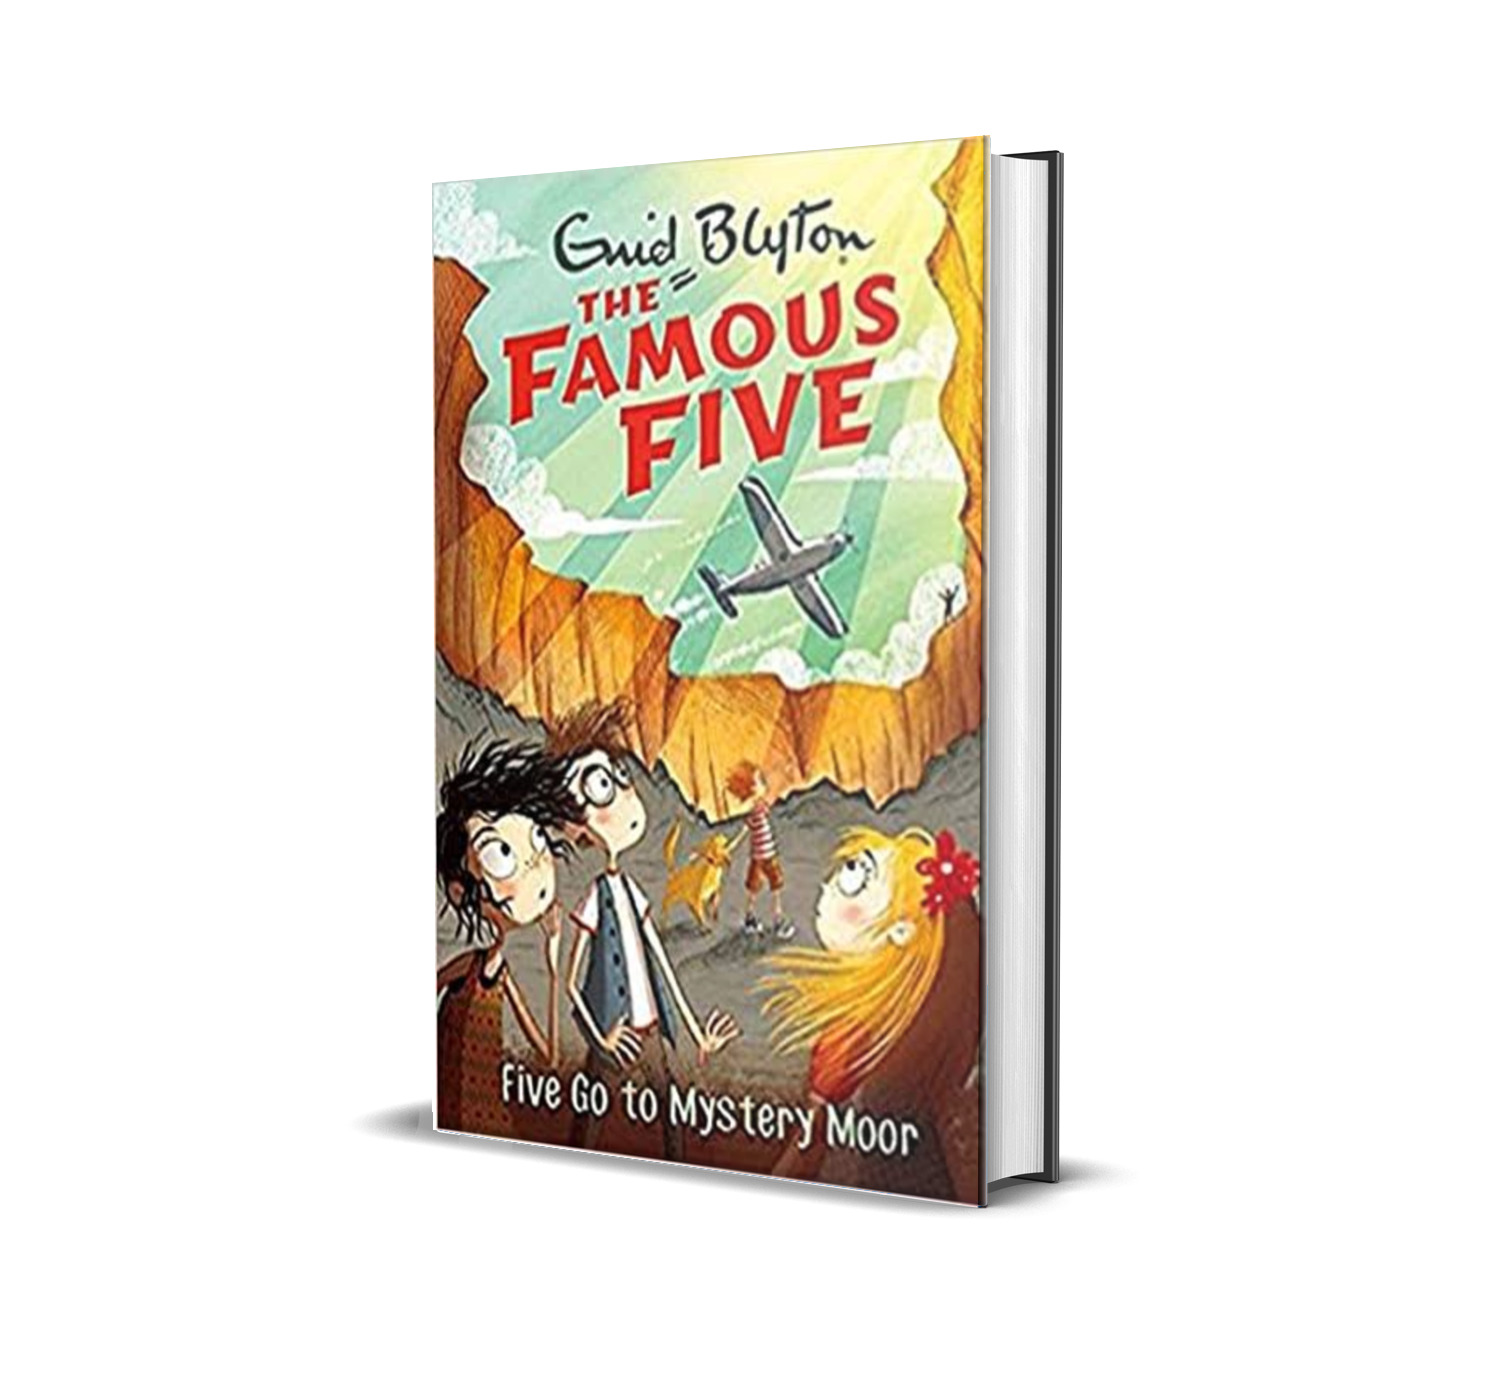 Five go to mystery moor:the famous five book 13- Enid Blyton